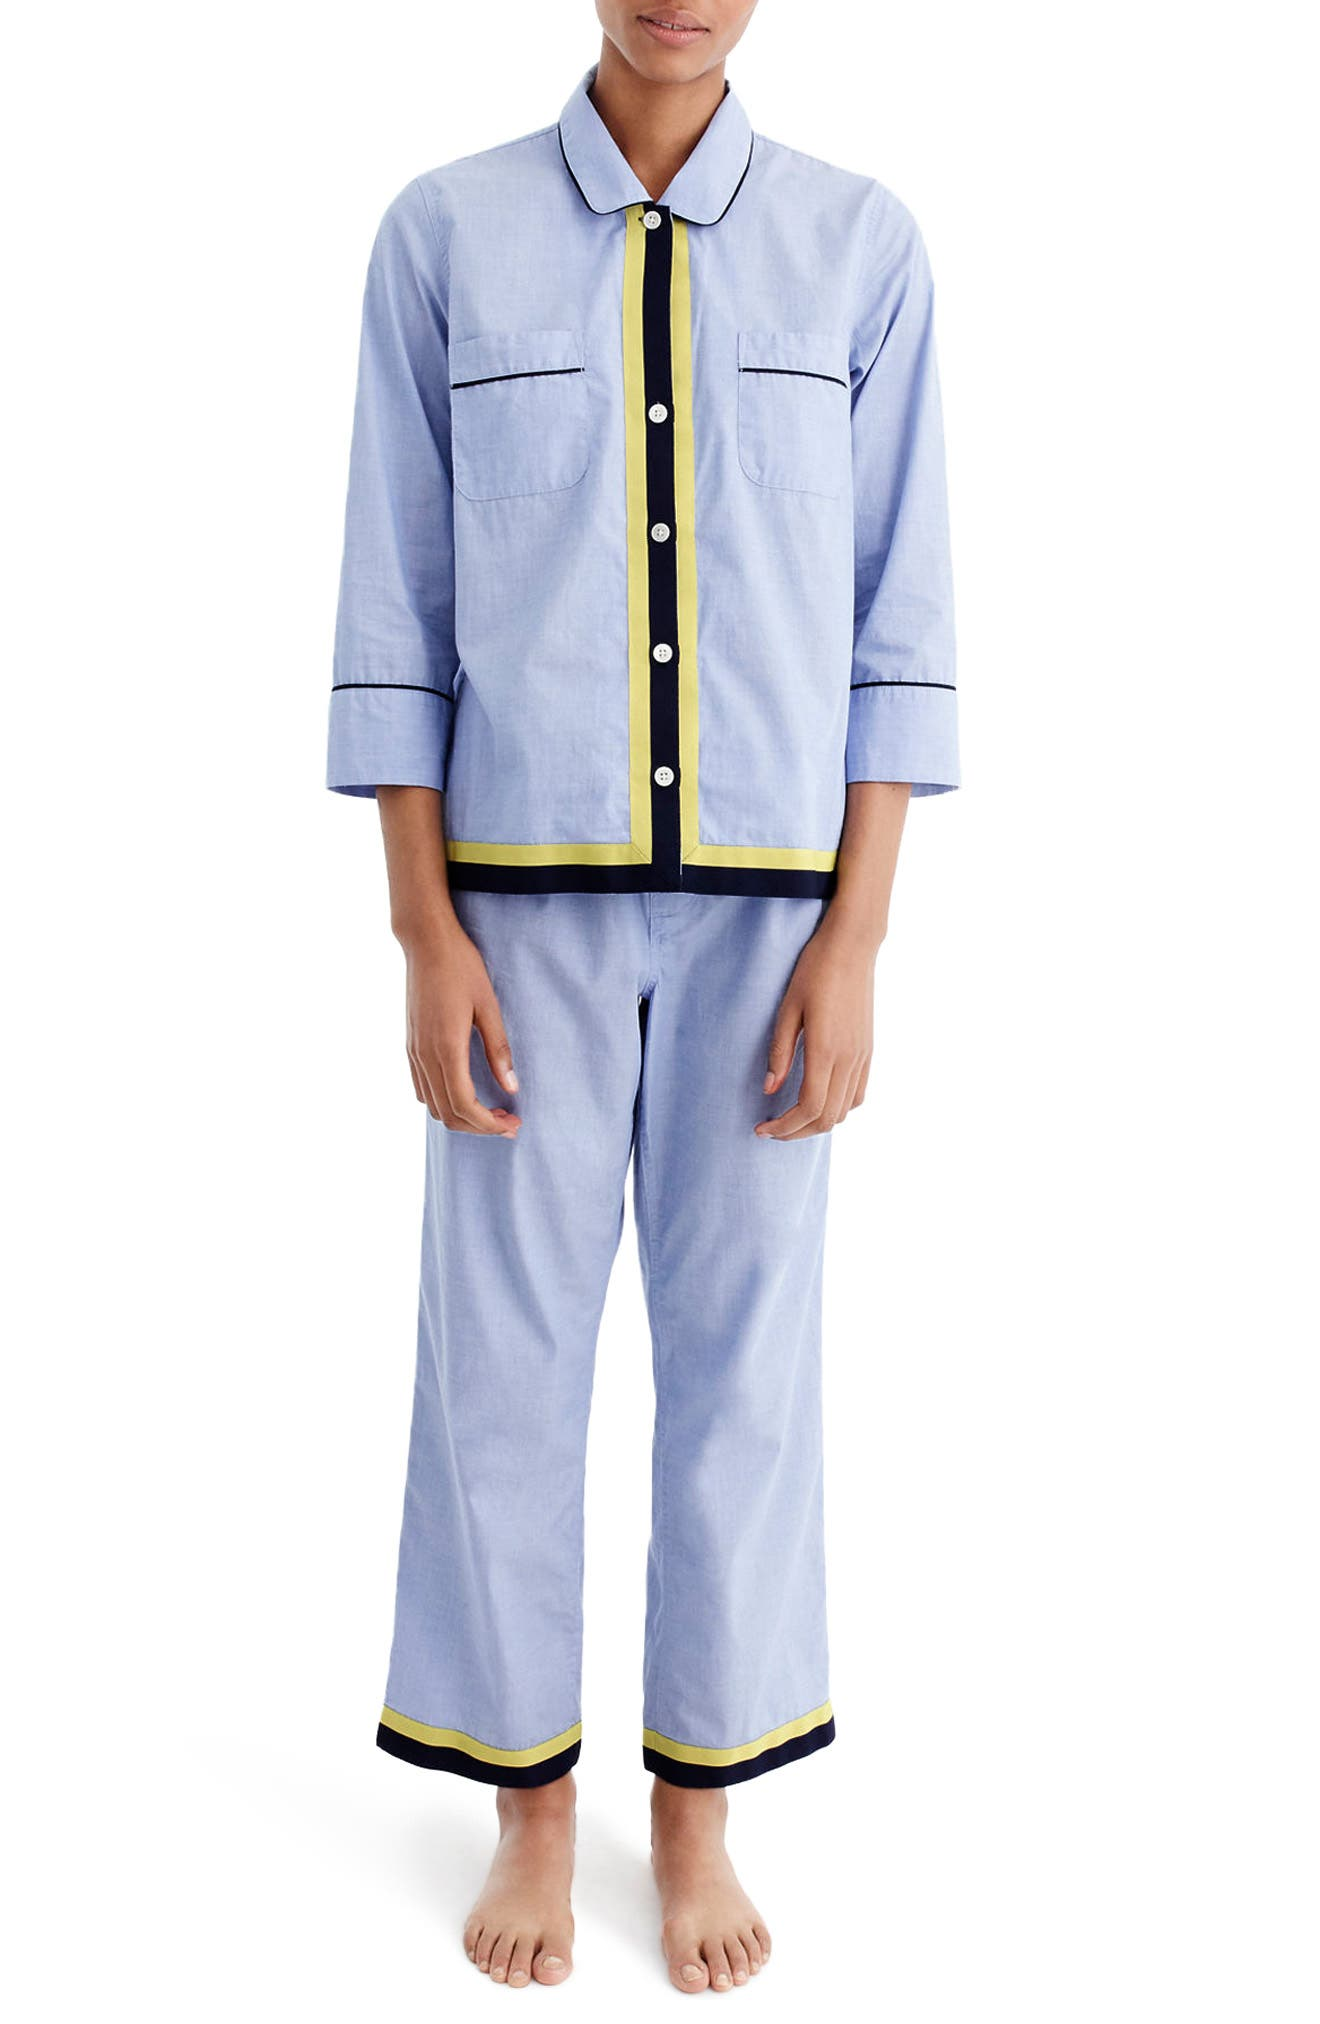 Alternate Image 1 Selected - J.Crew Grosgrain Trim Cotton Pajamas